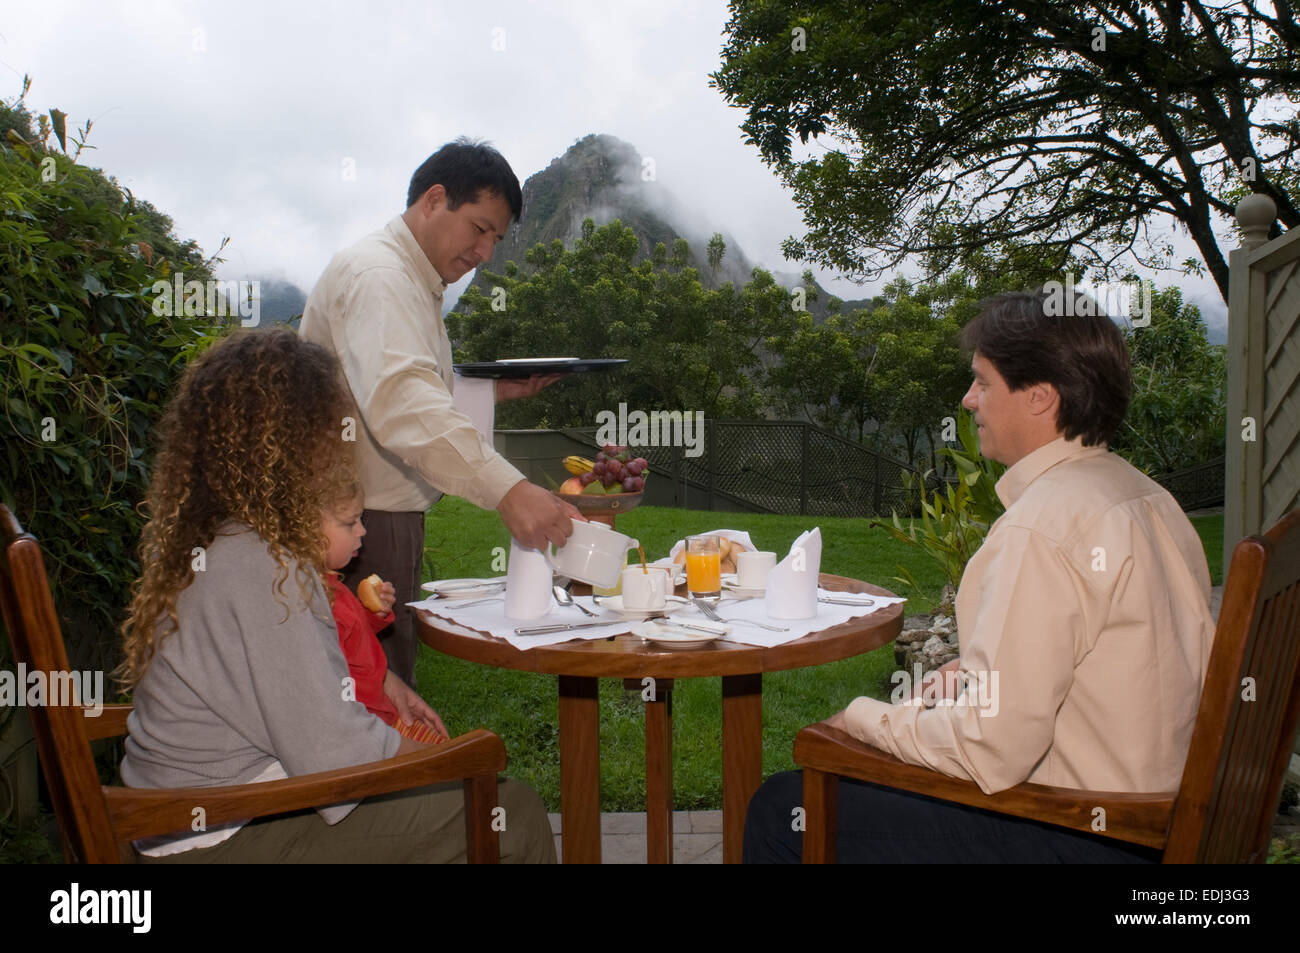 Belmond Sanctuary Lodge - Hotel in Machu Picchu, Peru. Breakfast in the garden in the back of one of the rooms at - Stock Image